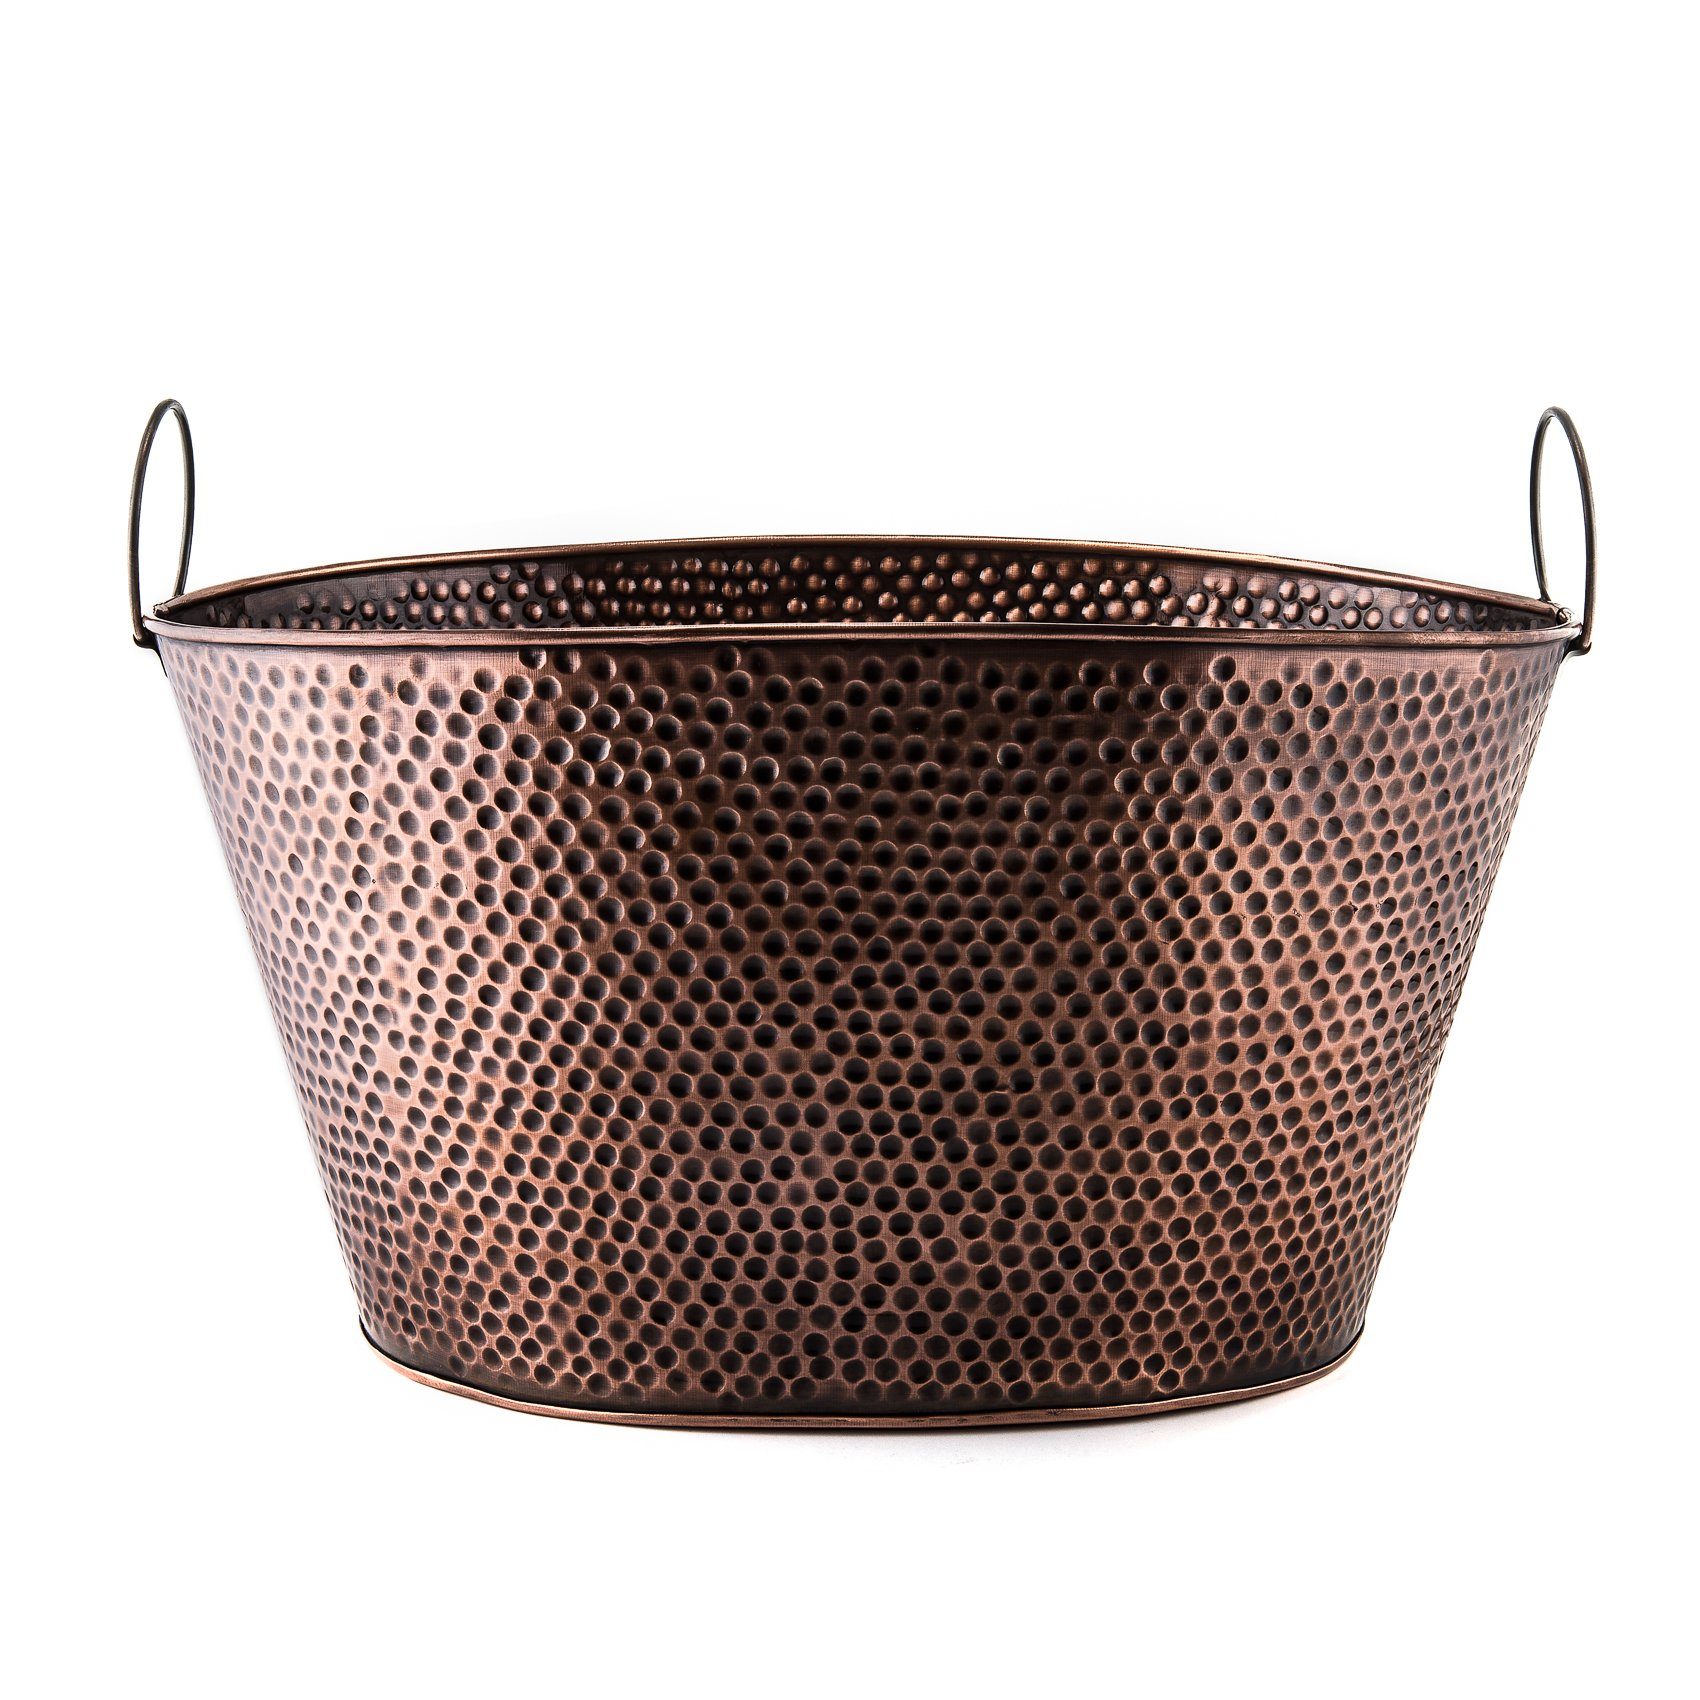 Old Dutch 636 Oval 7.9-Gallon Party Tub, 18 by 15 by 93/4-Inch, Antique Copper